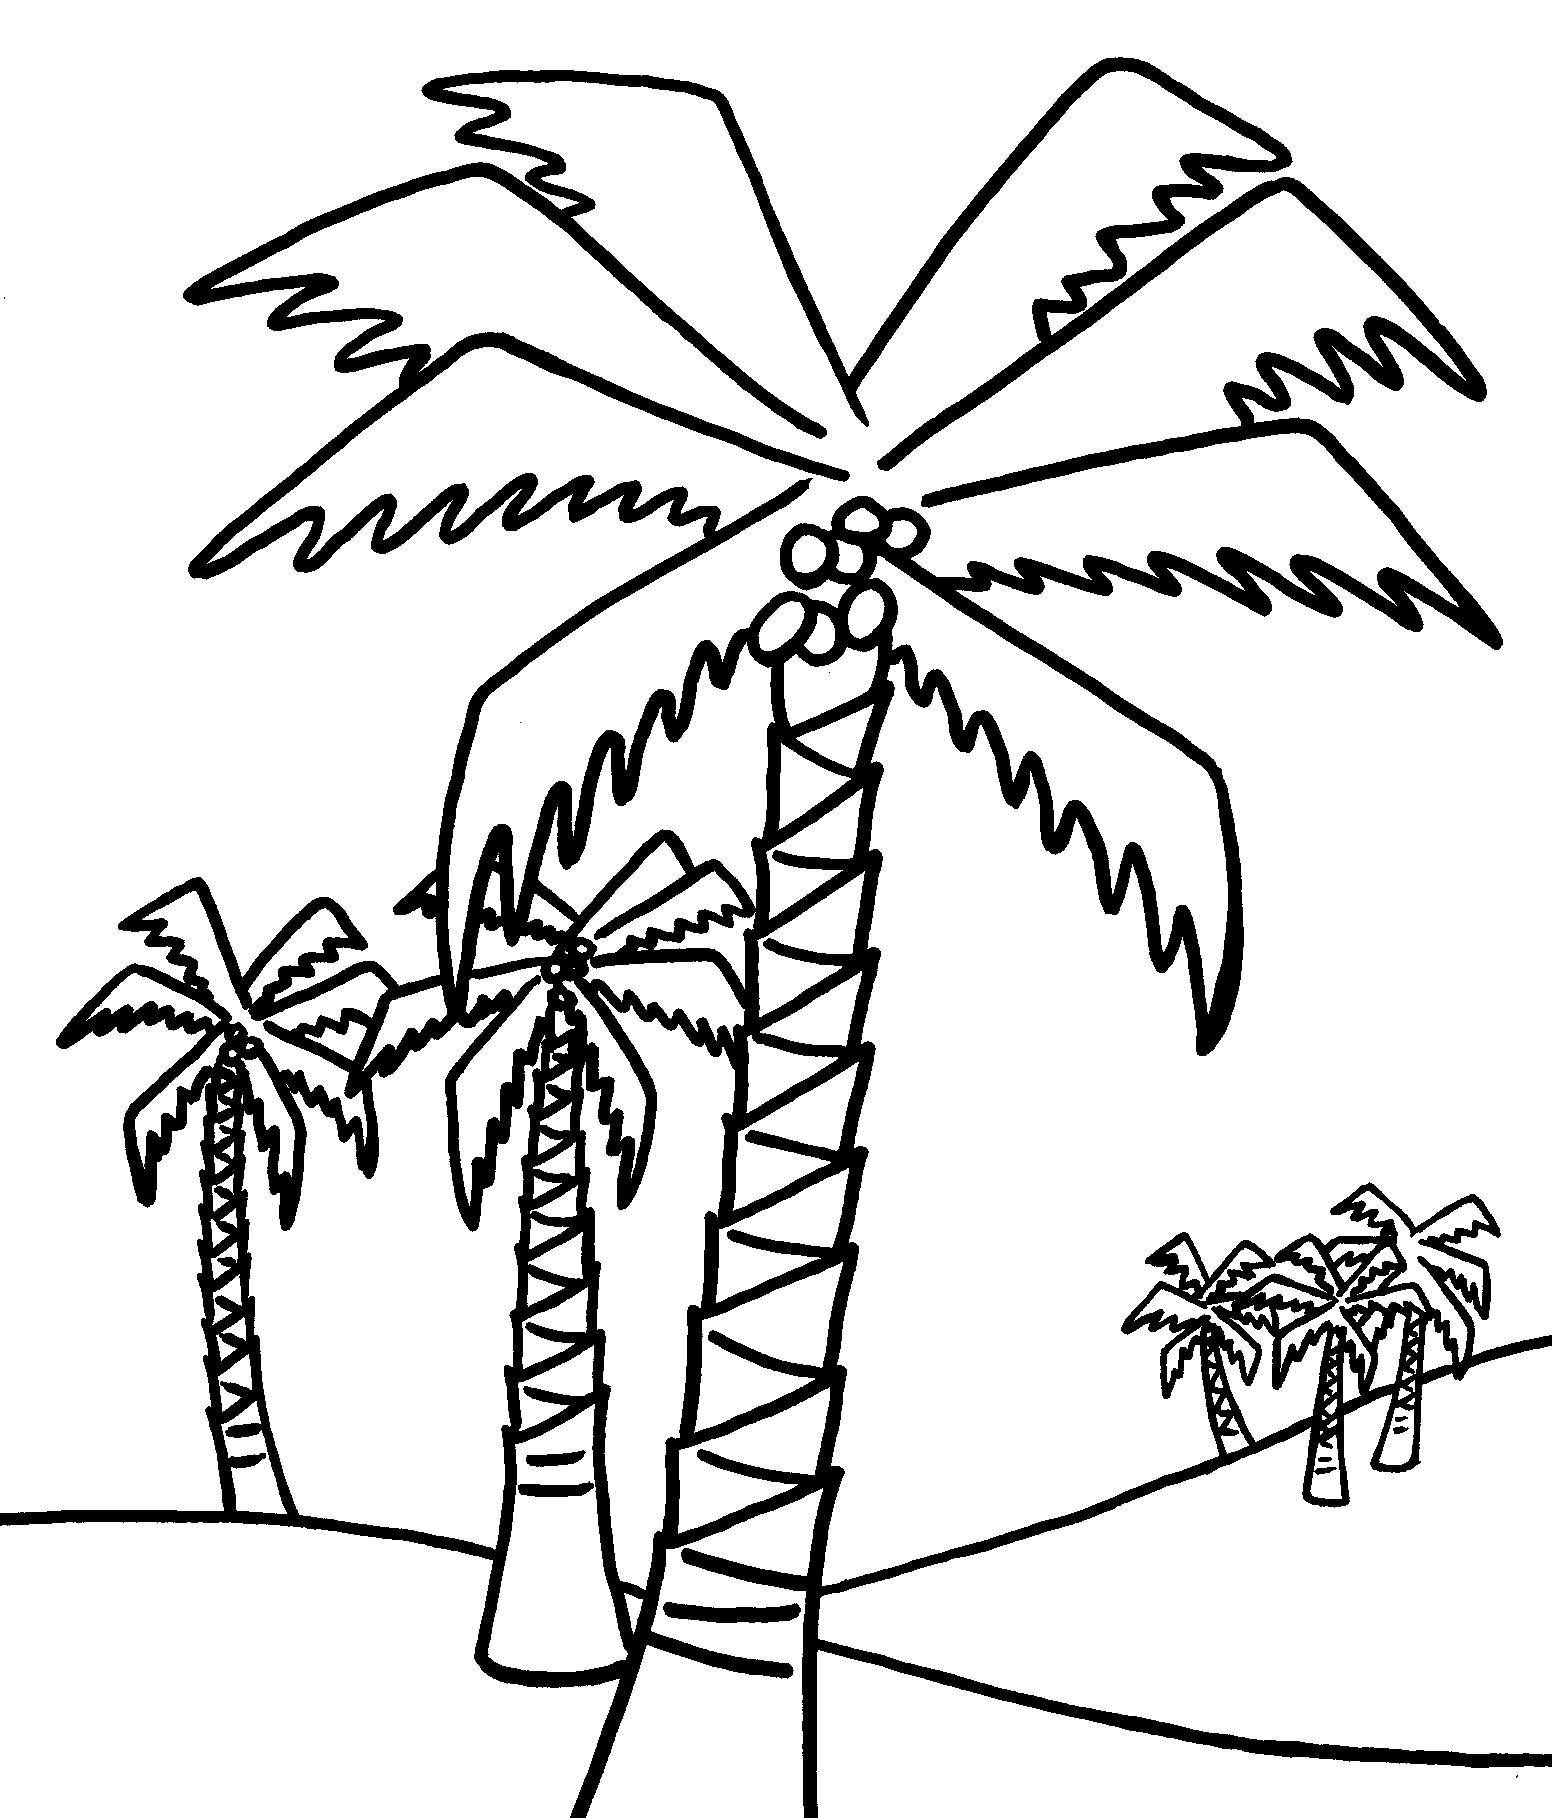 palm tree printable coloring pages | Palm Tree Coloring Pages For Kids - Coloring Home